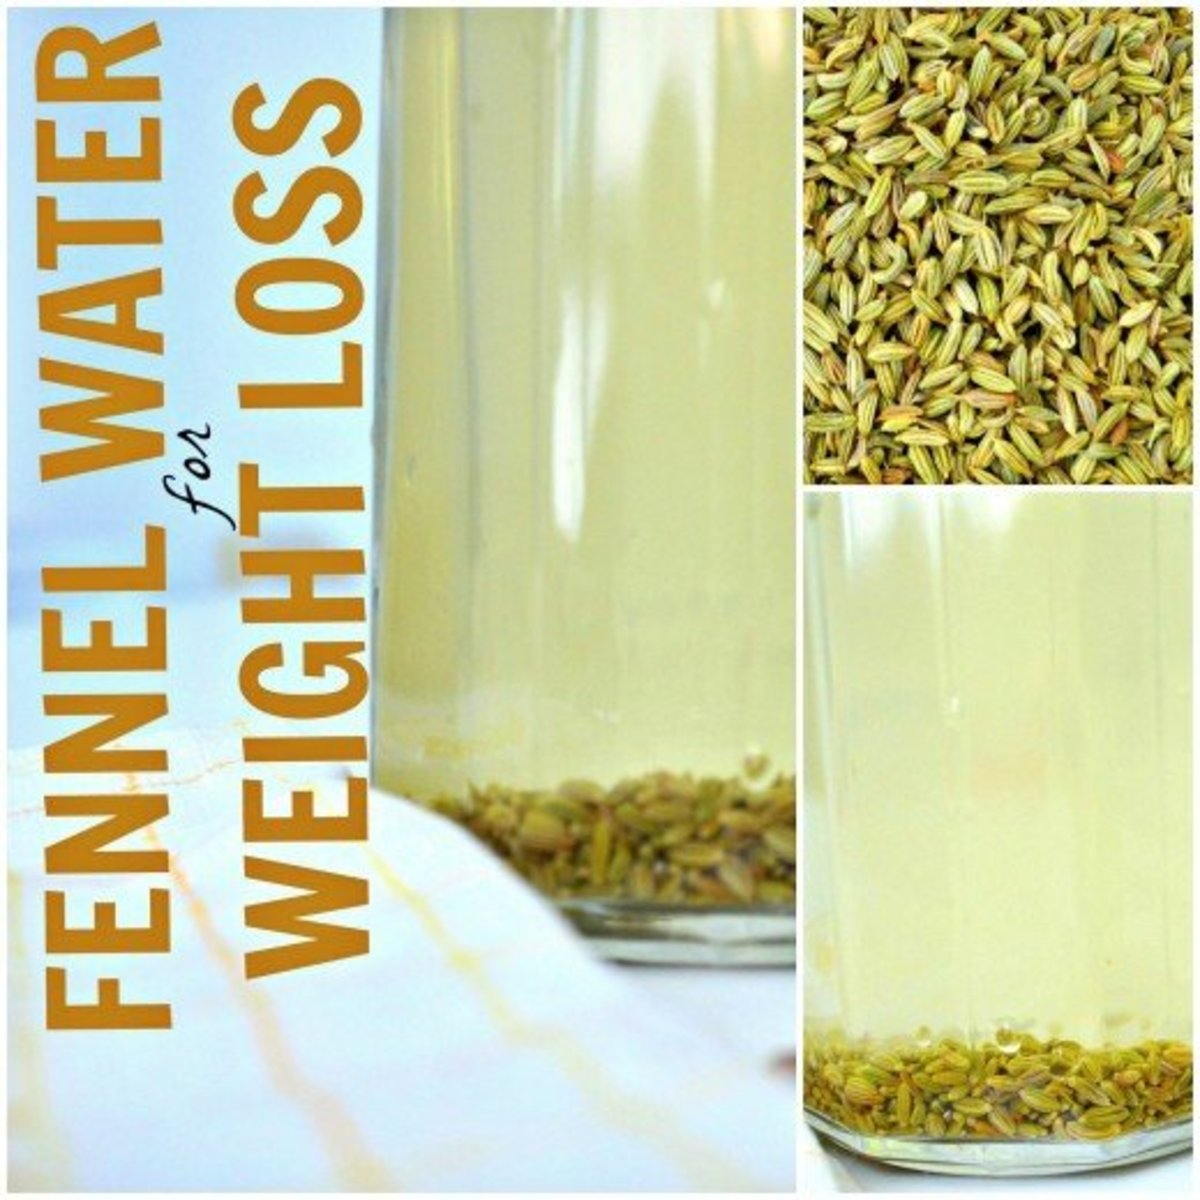 Learn how to use fennel seed water for weight loss here.